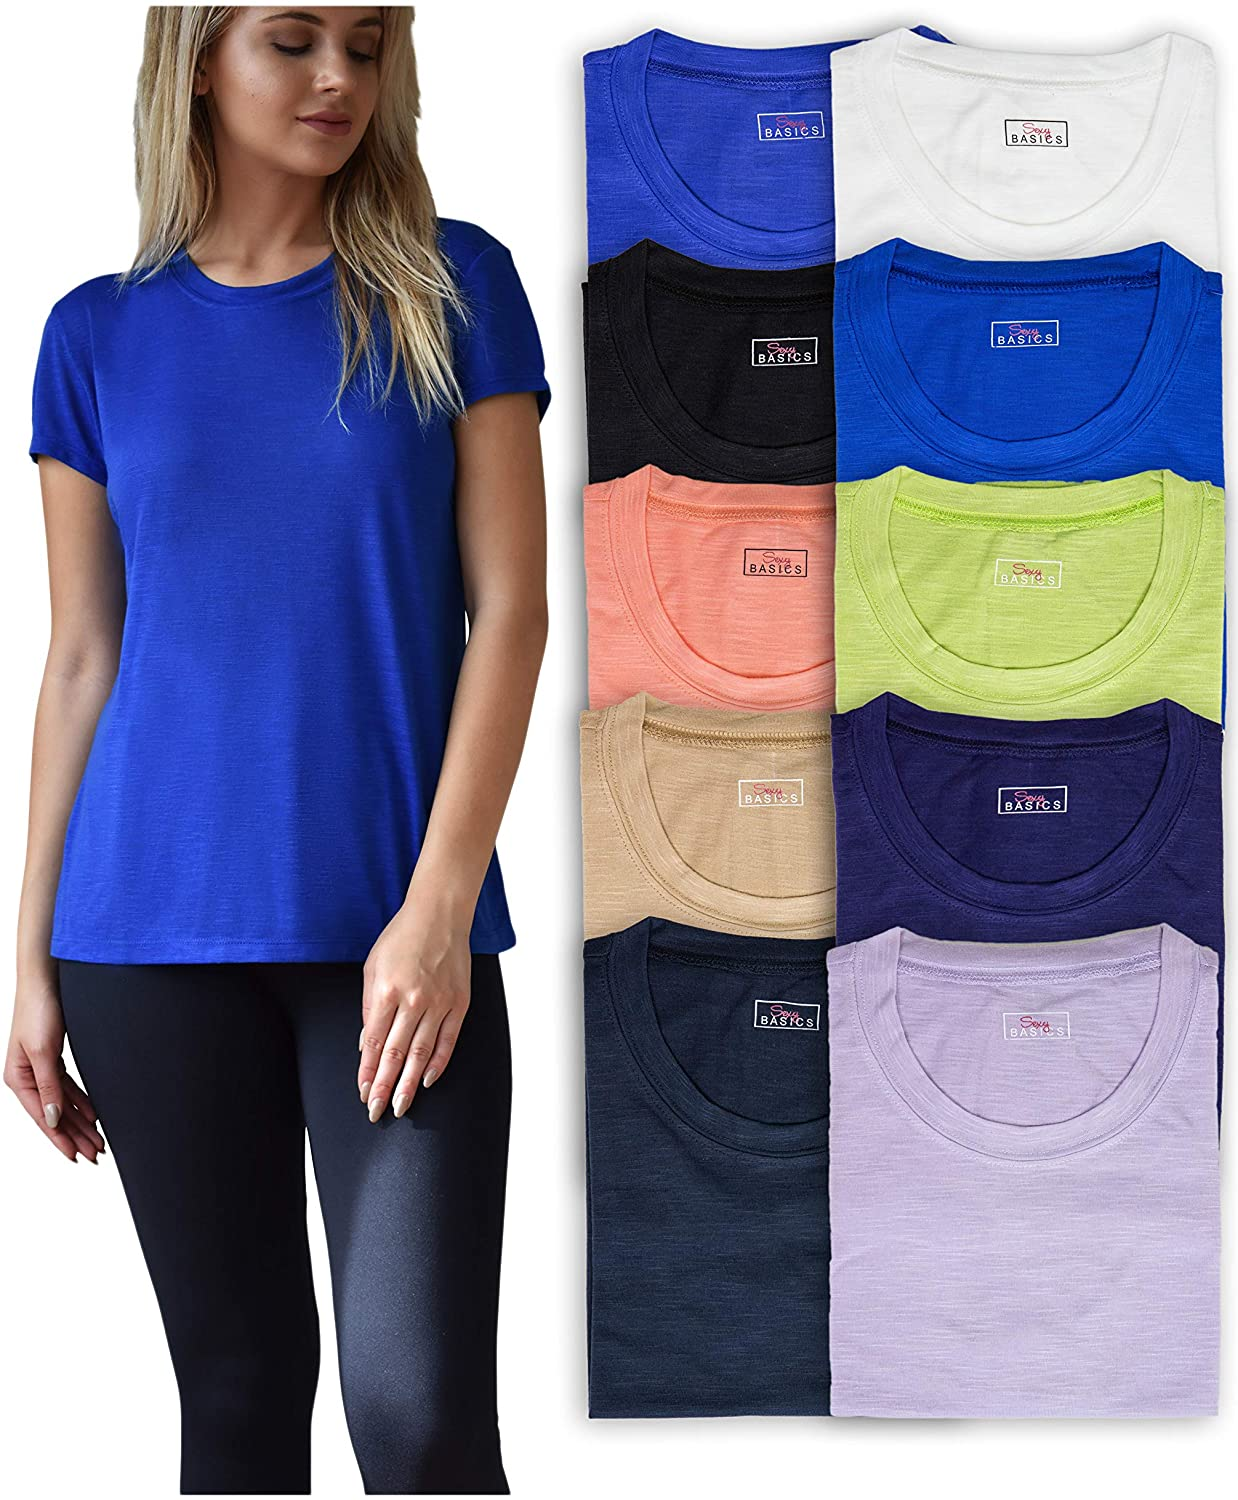 Sexy Basics Women's 10 Pack Everyday Flowy Slub Burnout Active Casual Workout Crew T Shirt Tops